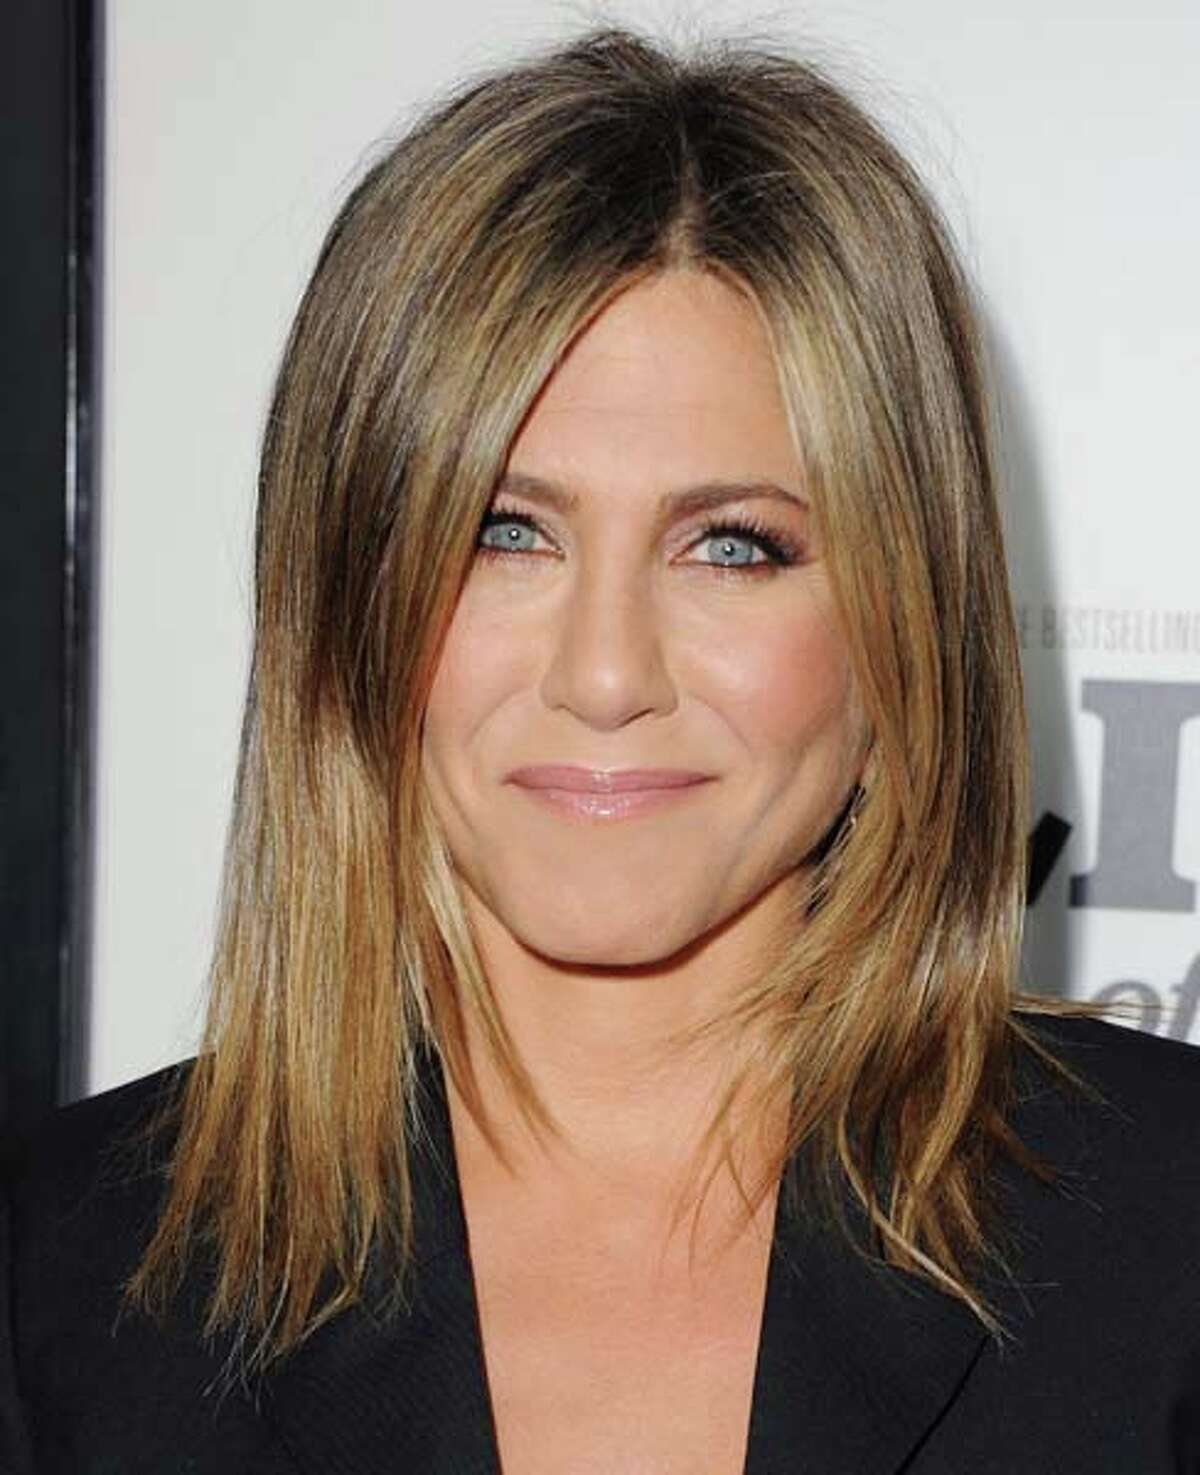 """Jennifer Aniston in August 2014. She's about to appear in the new drama """"Cake,"""" in which she plays a woman addicted to painkillers."""